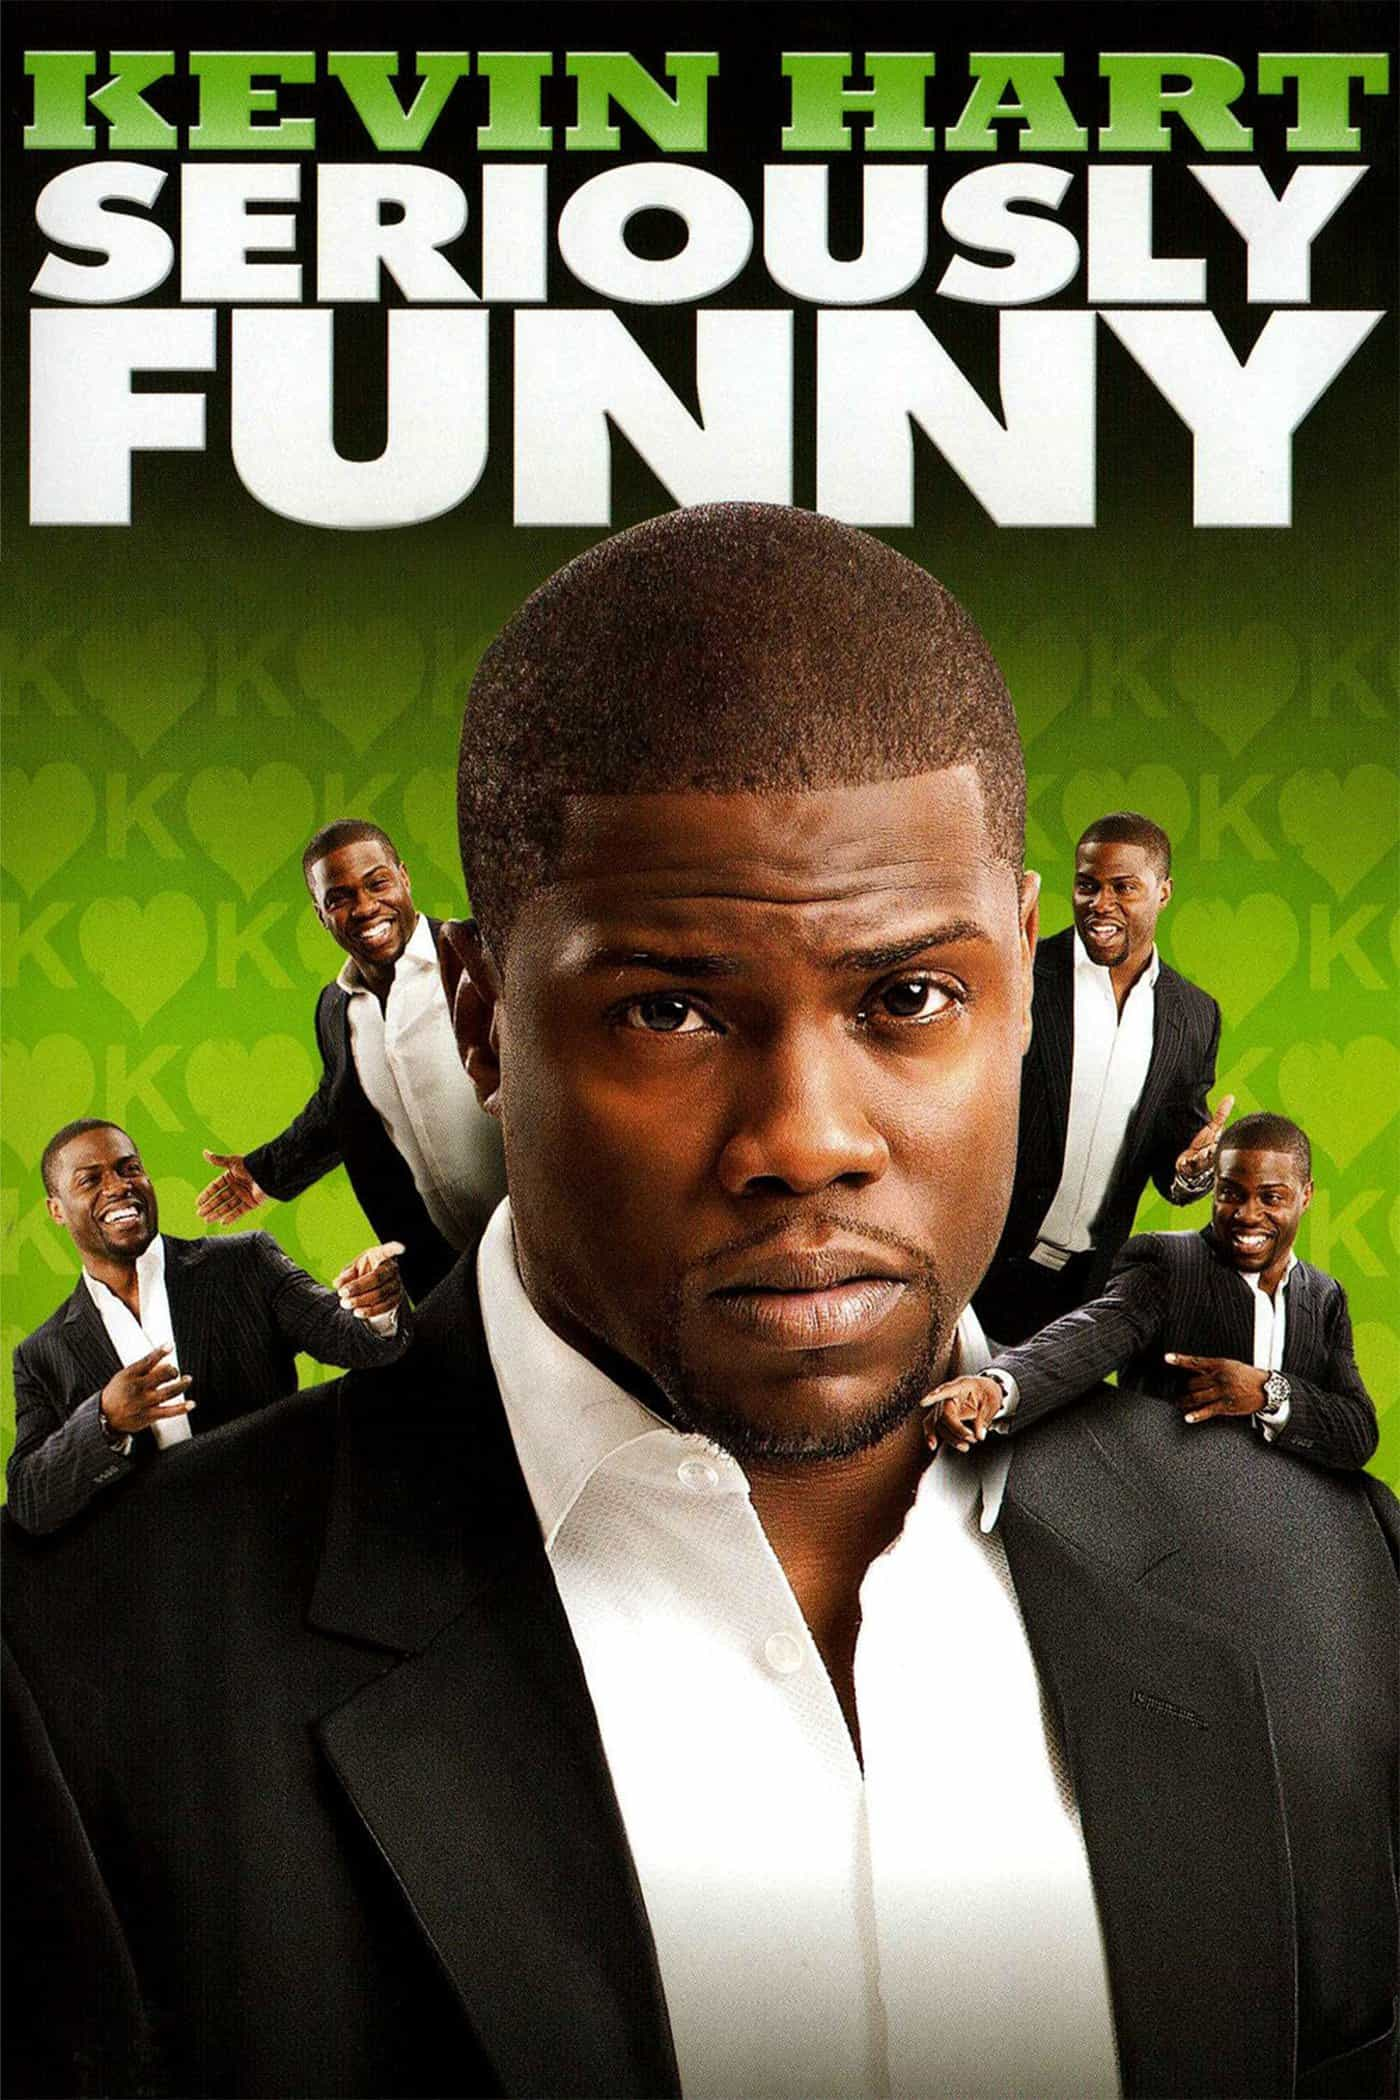 Kevin Hart: Seriously Funny, 2010